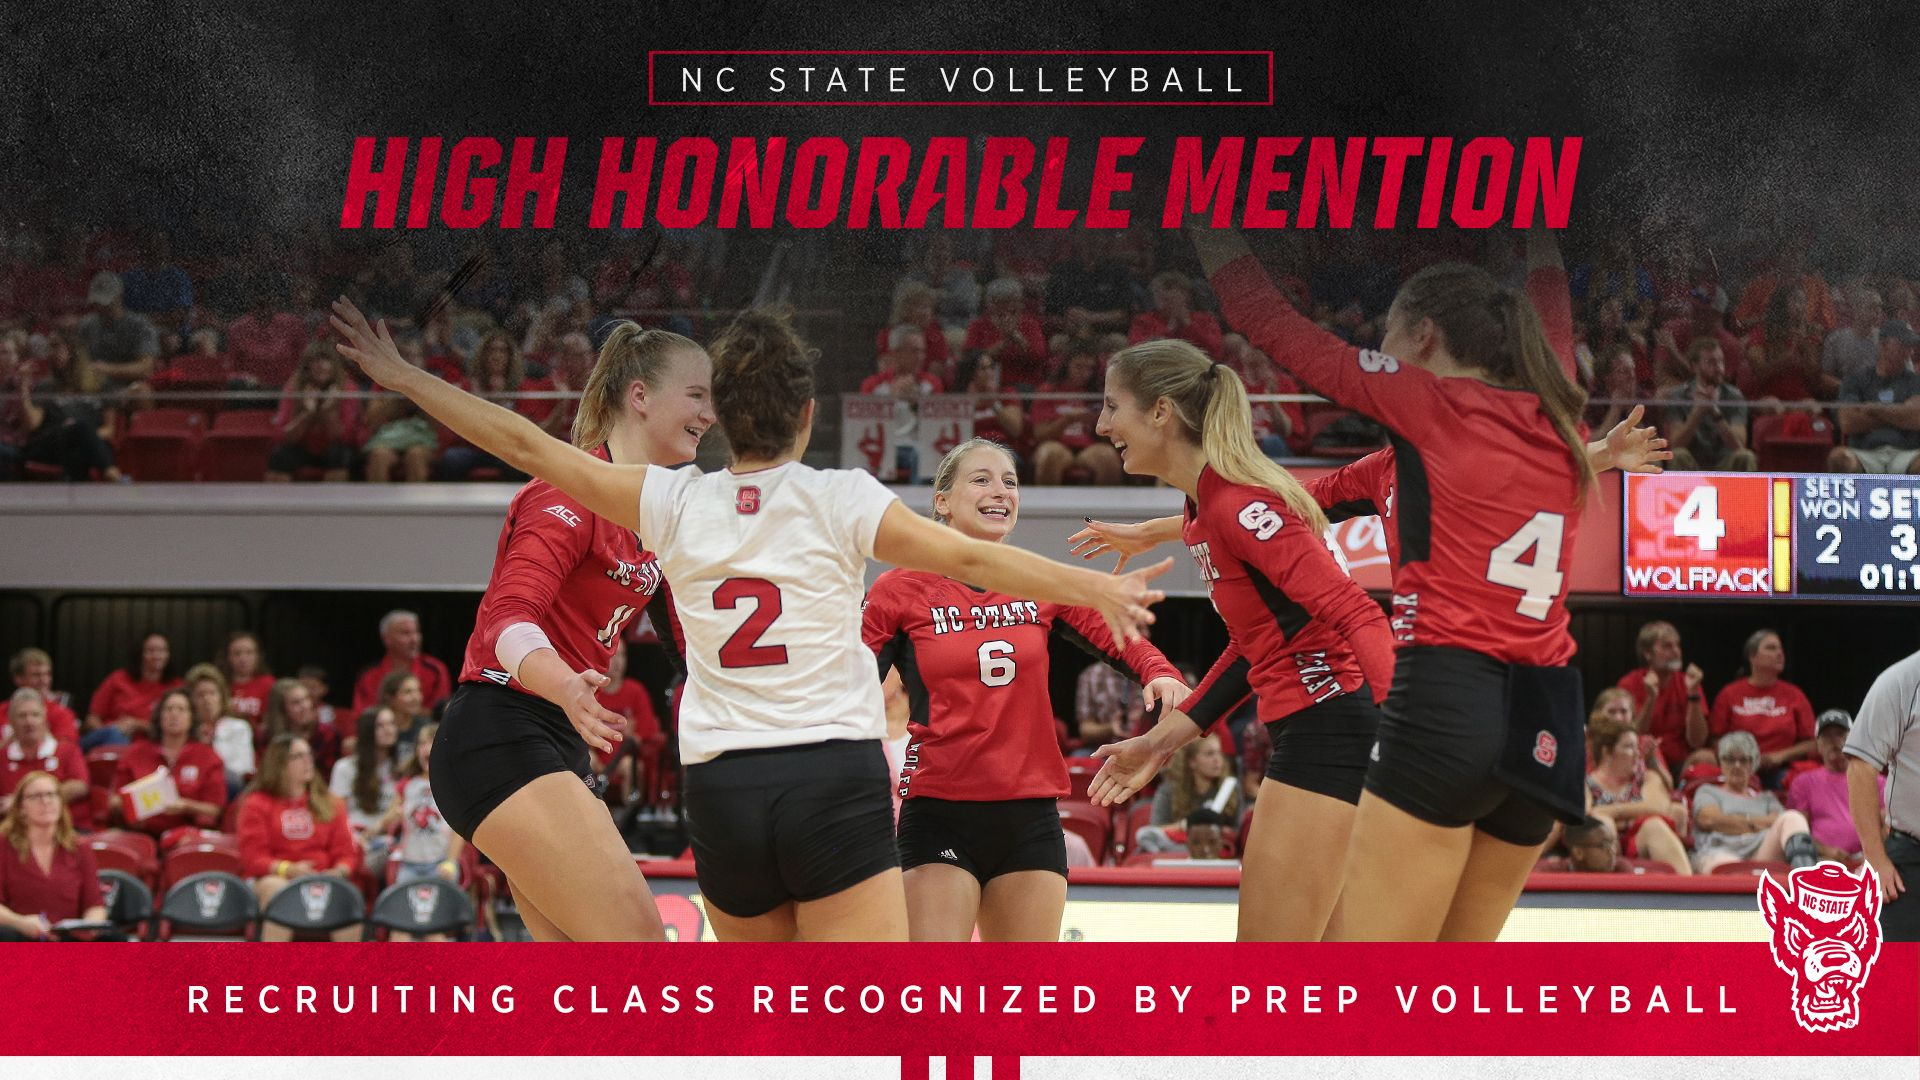 Nc state volleyballs recruiting class recognized by prep